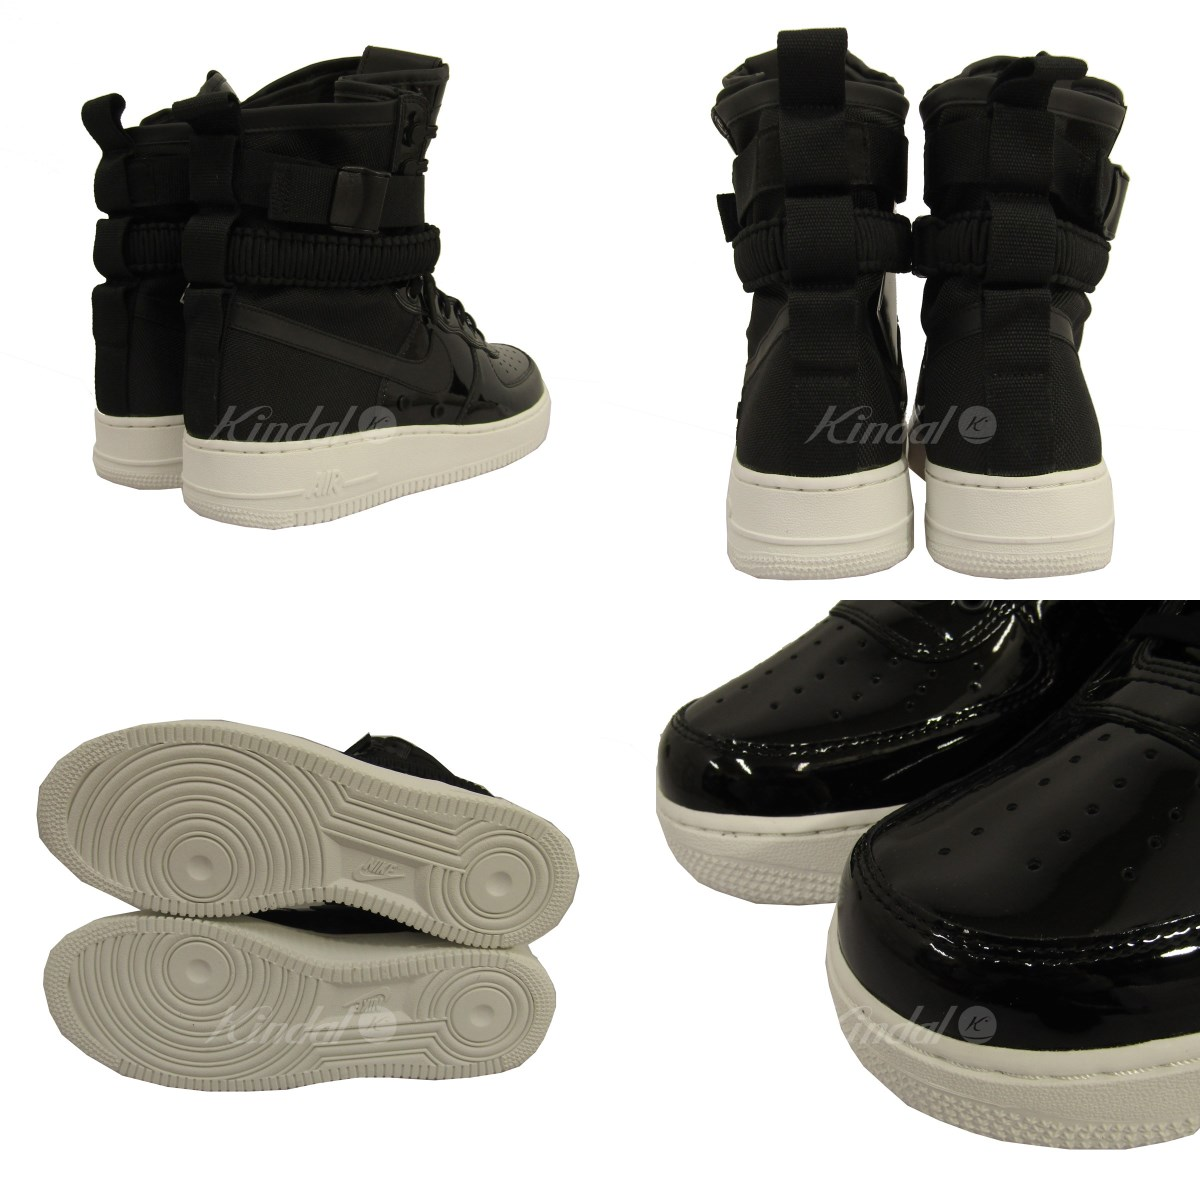 the latest 46c11 aeb69 NIKE W SF AF1 SE PRM AIR FORCE 1 higher frequency elimination sneakers  black size: 29cm (Nike)